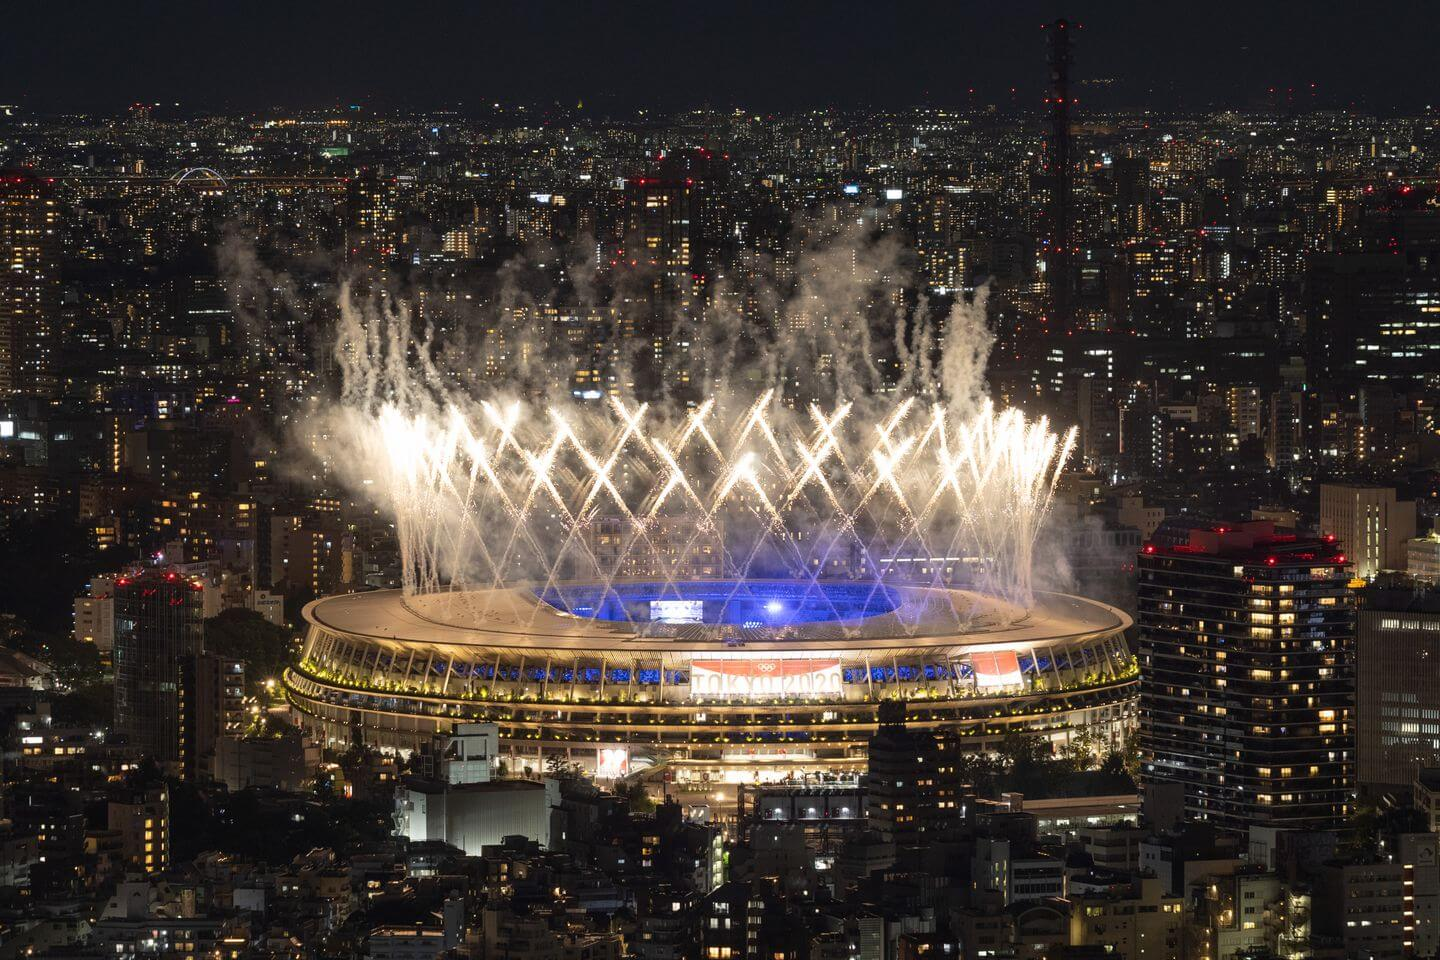 2021 Olympics: Live updates, news, medal count as closing ceremony ends Games; U.S. women's hoops, volleyball win gold